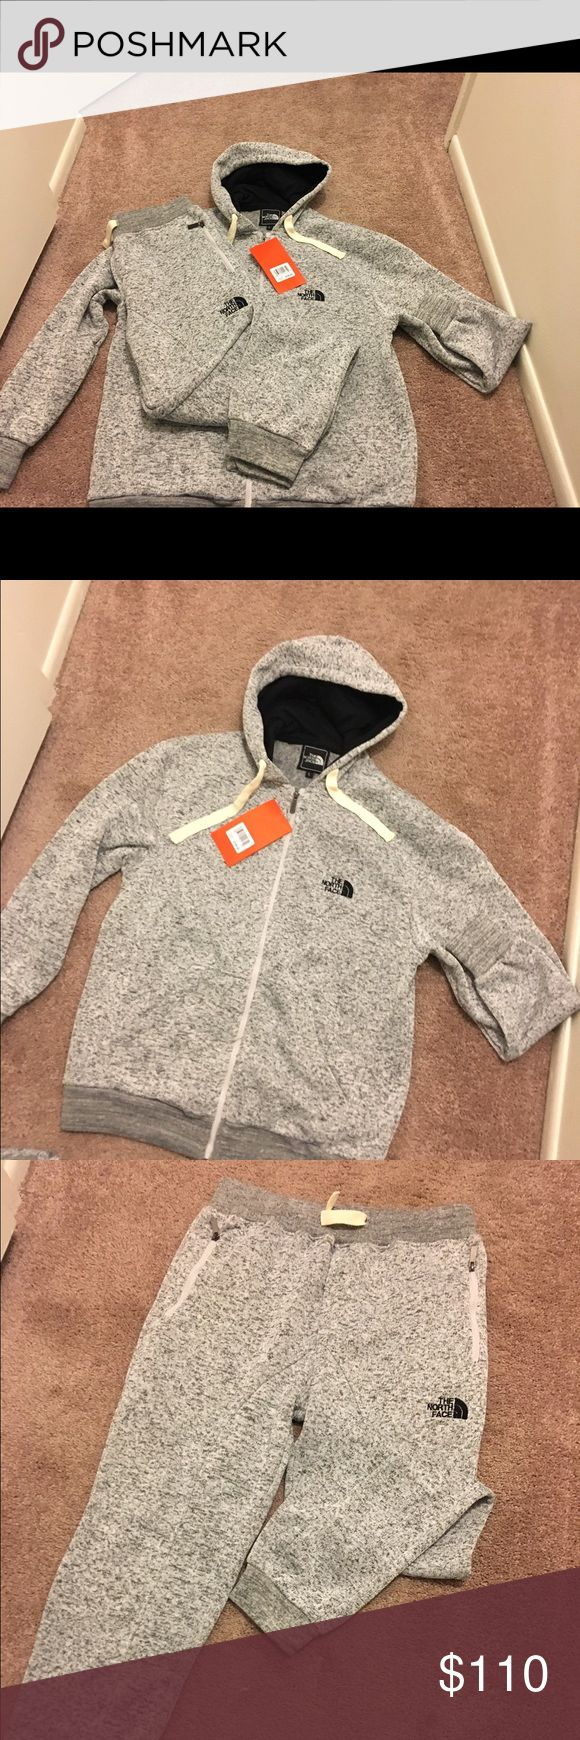 North face sweat suit Brand new, never worn, men's sweat suit North Face Pants Sweatpants & Joggers